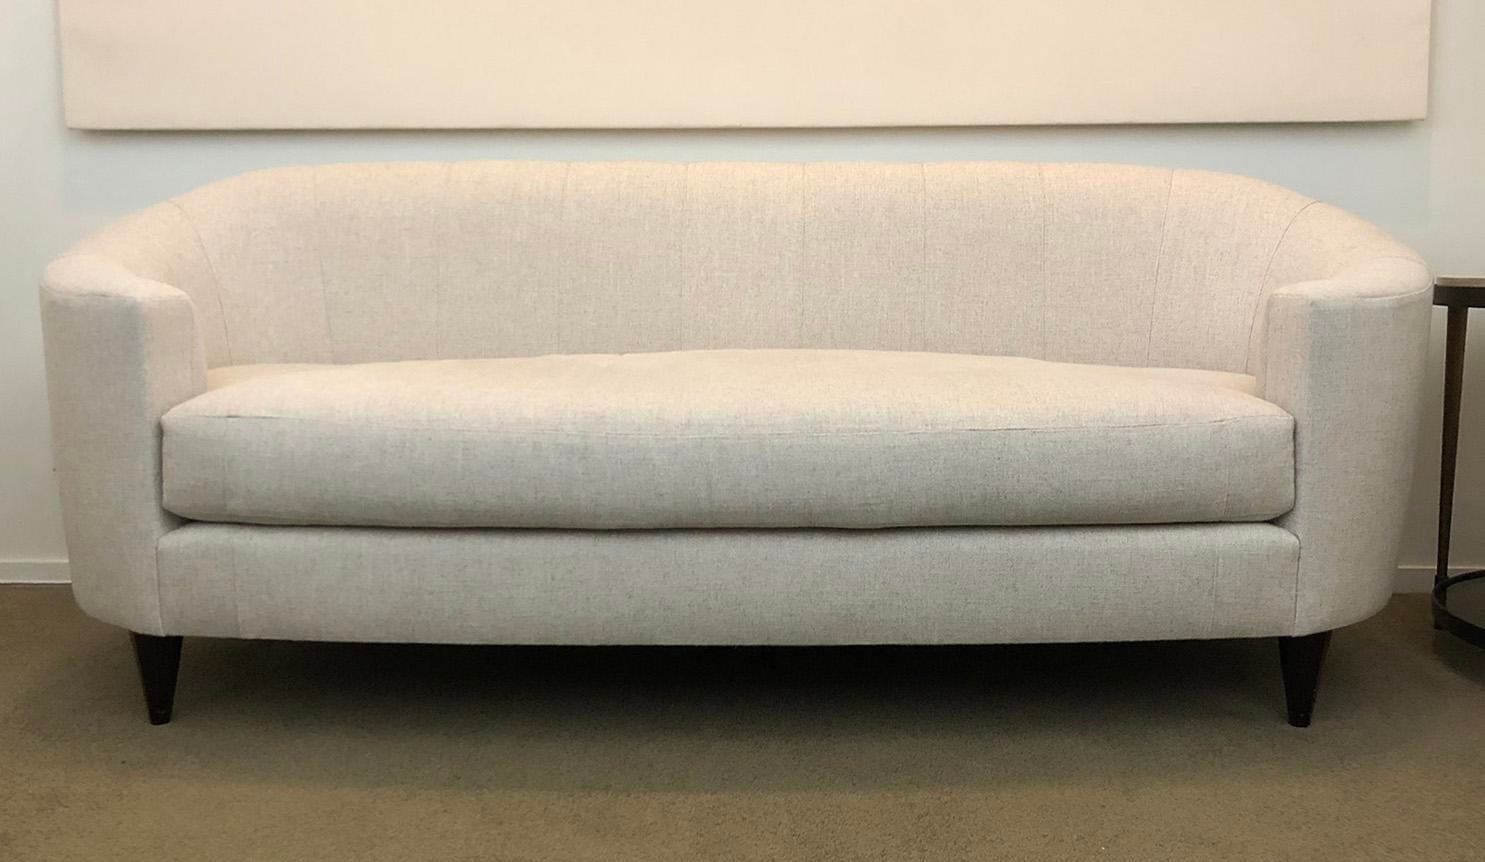 Genial Thomas Pheasant For Baker Oval Sofa For Sale   Image 5 Of 5